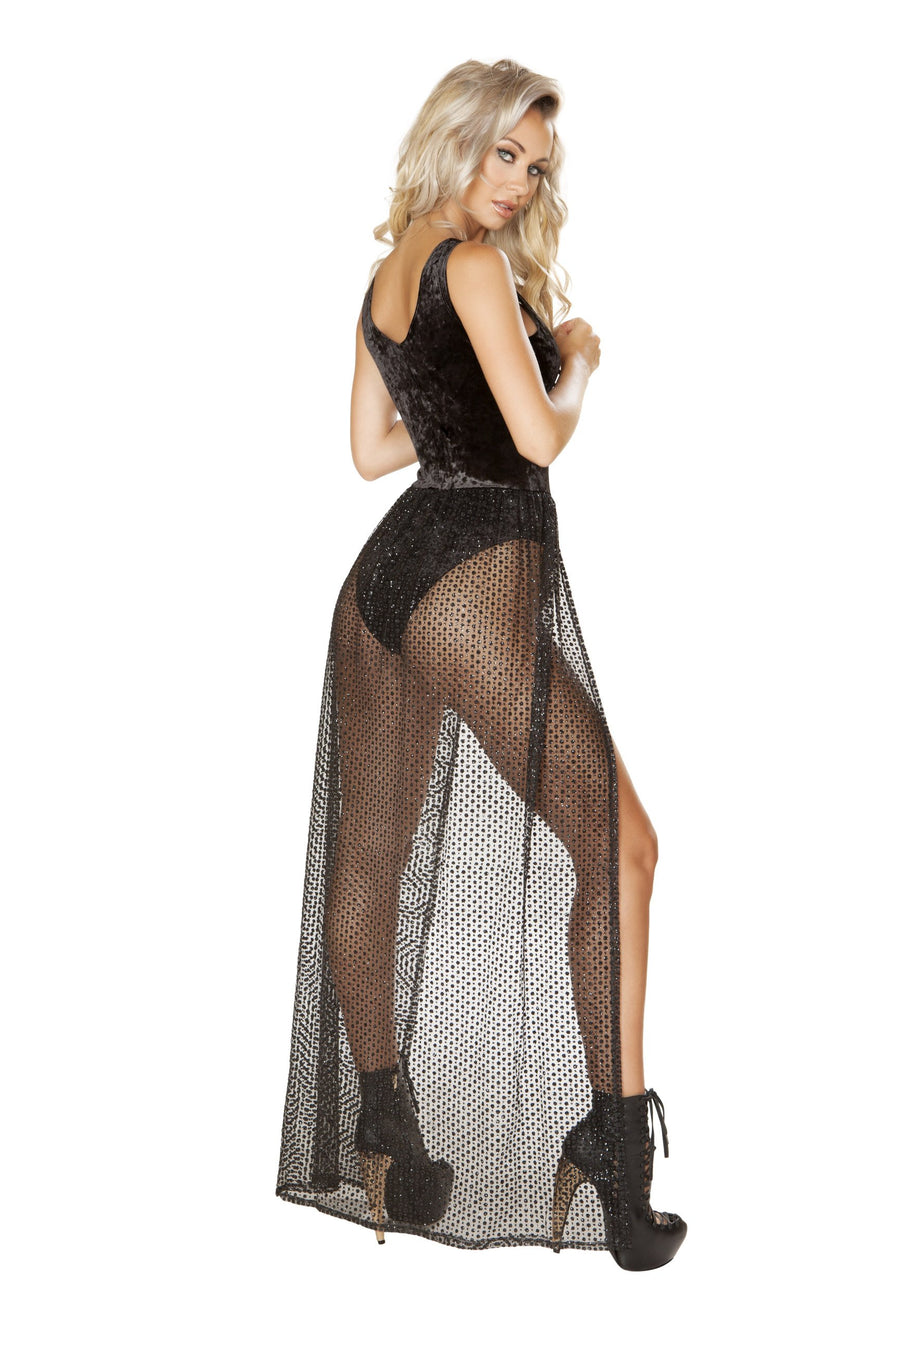 1pc Lace-up Velvet Romper with Attached Sheer Open Front Glitter Skirt